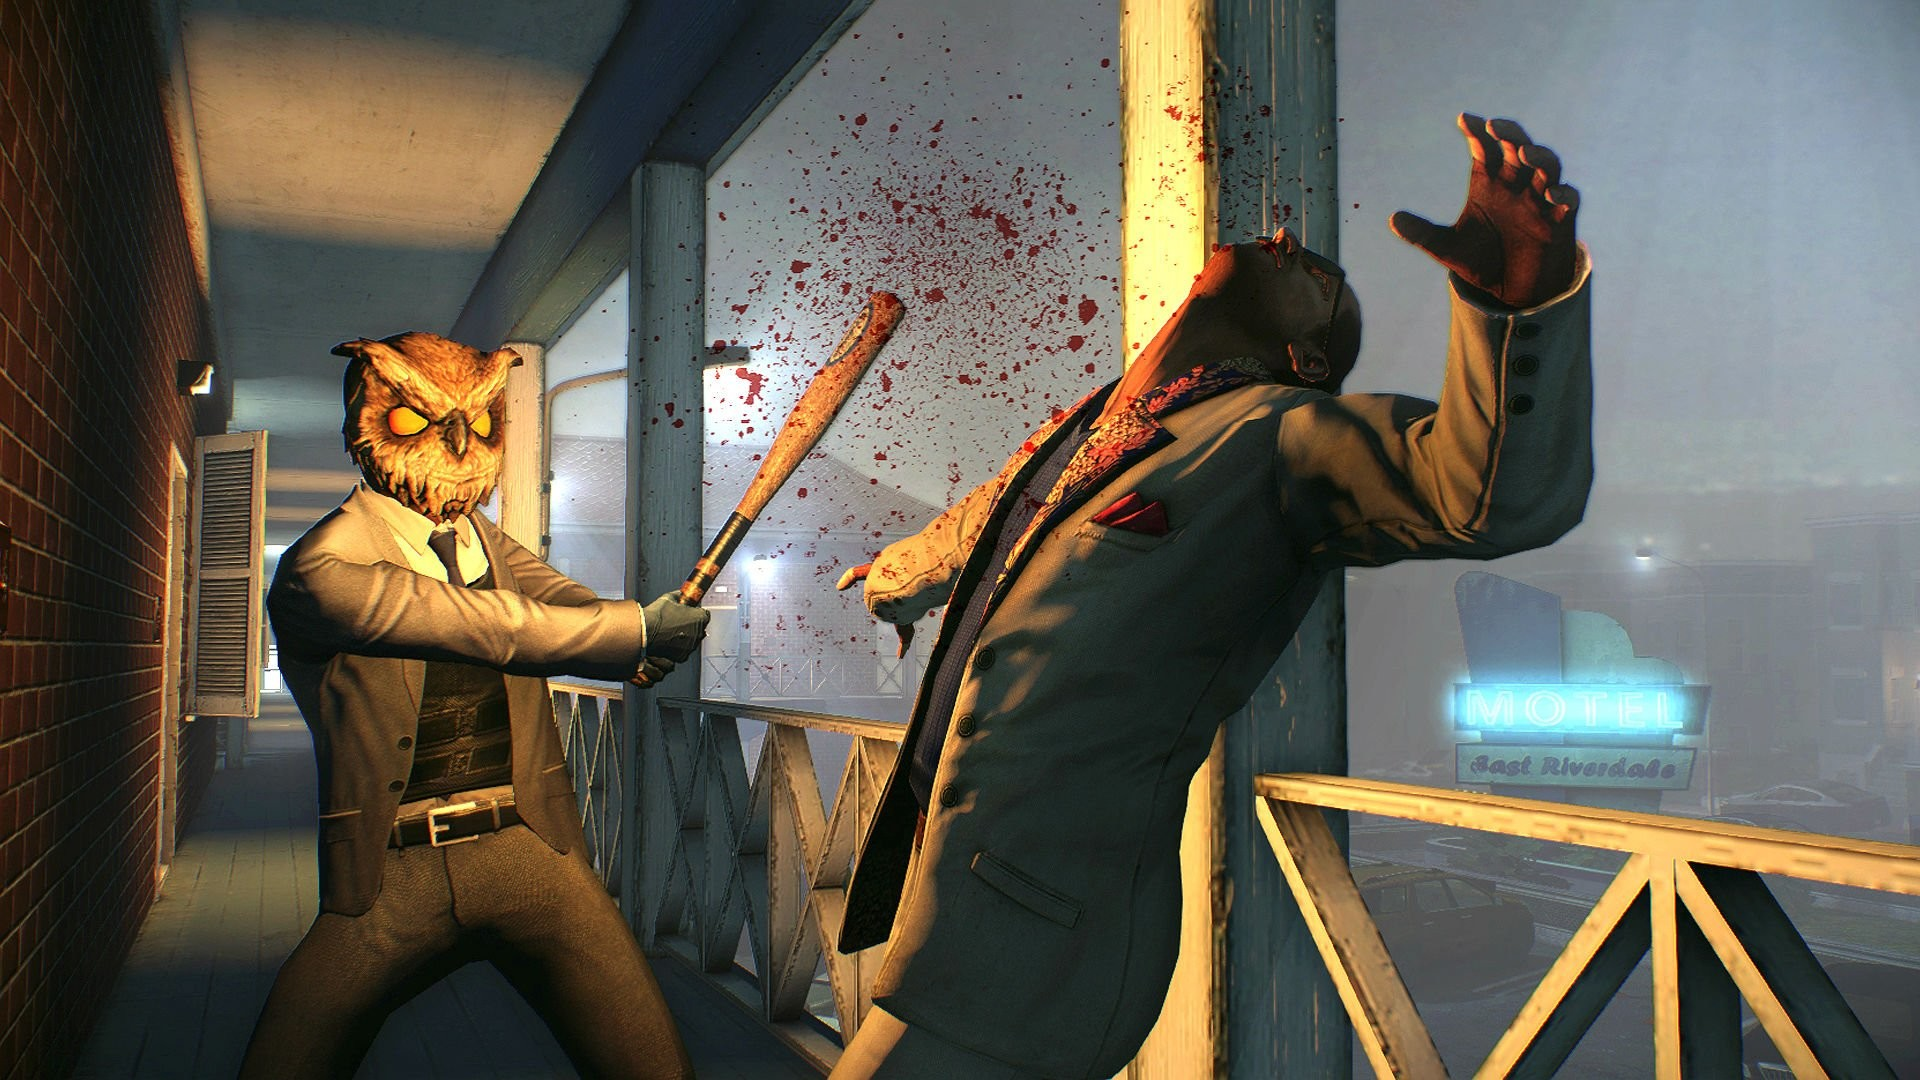 HOTLINE-MIAMI action shooter fighting hotline miami payday blood dark  wallpaper | | 547982 | WallpaperUP